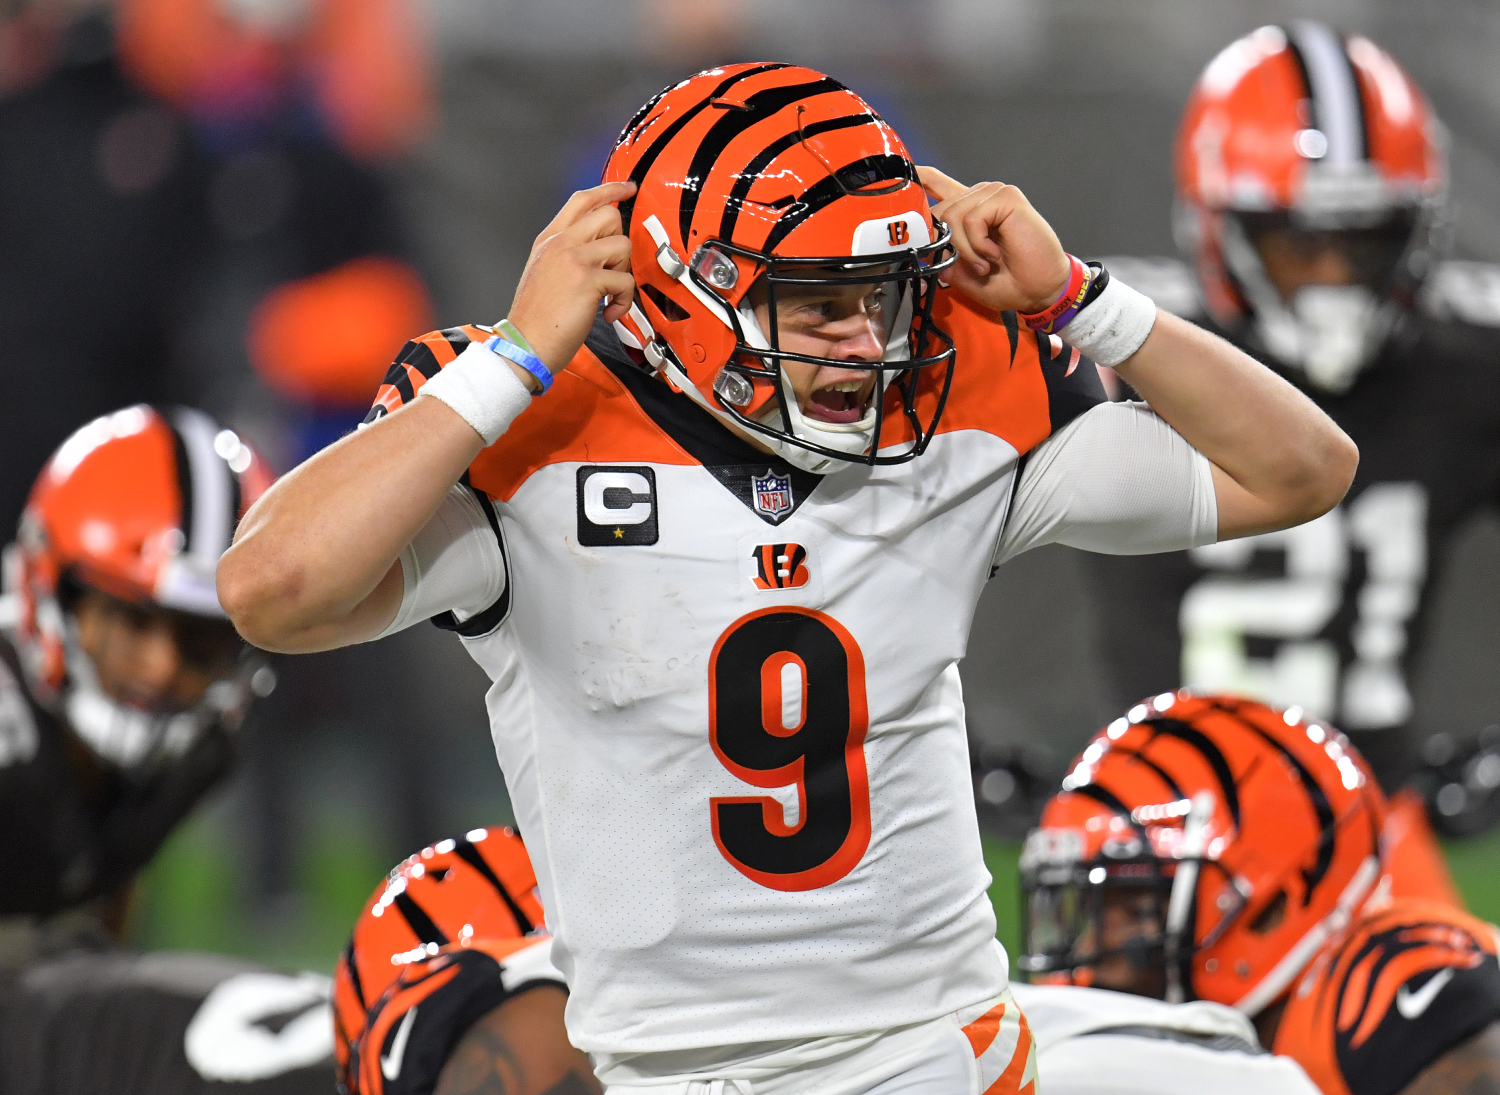 Joe Burrow has played really well for the Cincinnati Bengals. His play has been so good that he has received praise from LeBron James.